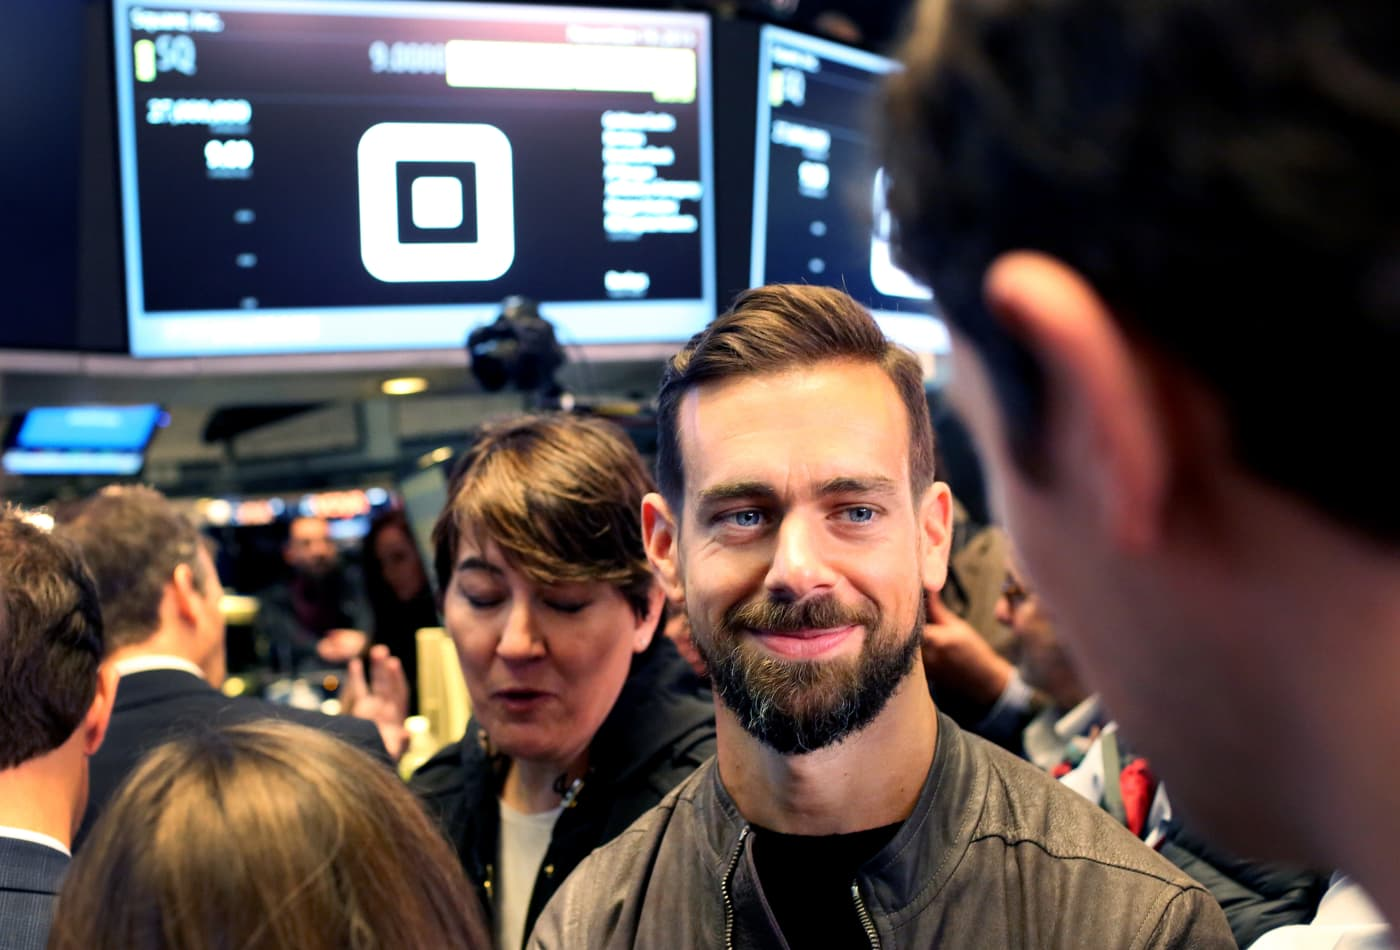 Square emerges as a coronavirus hedge while other payment stocks get crushed